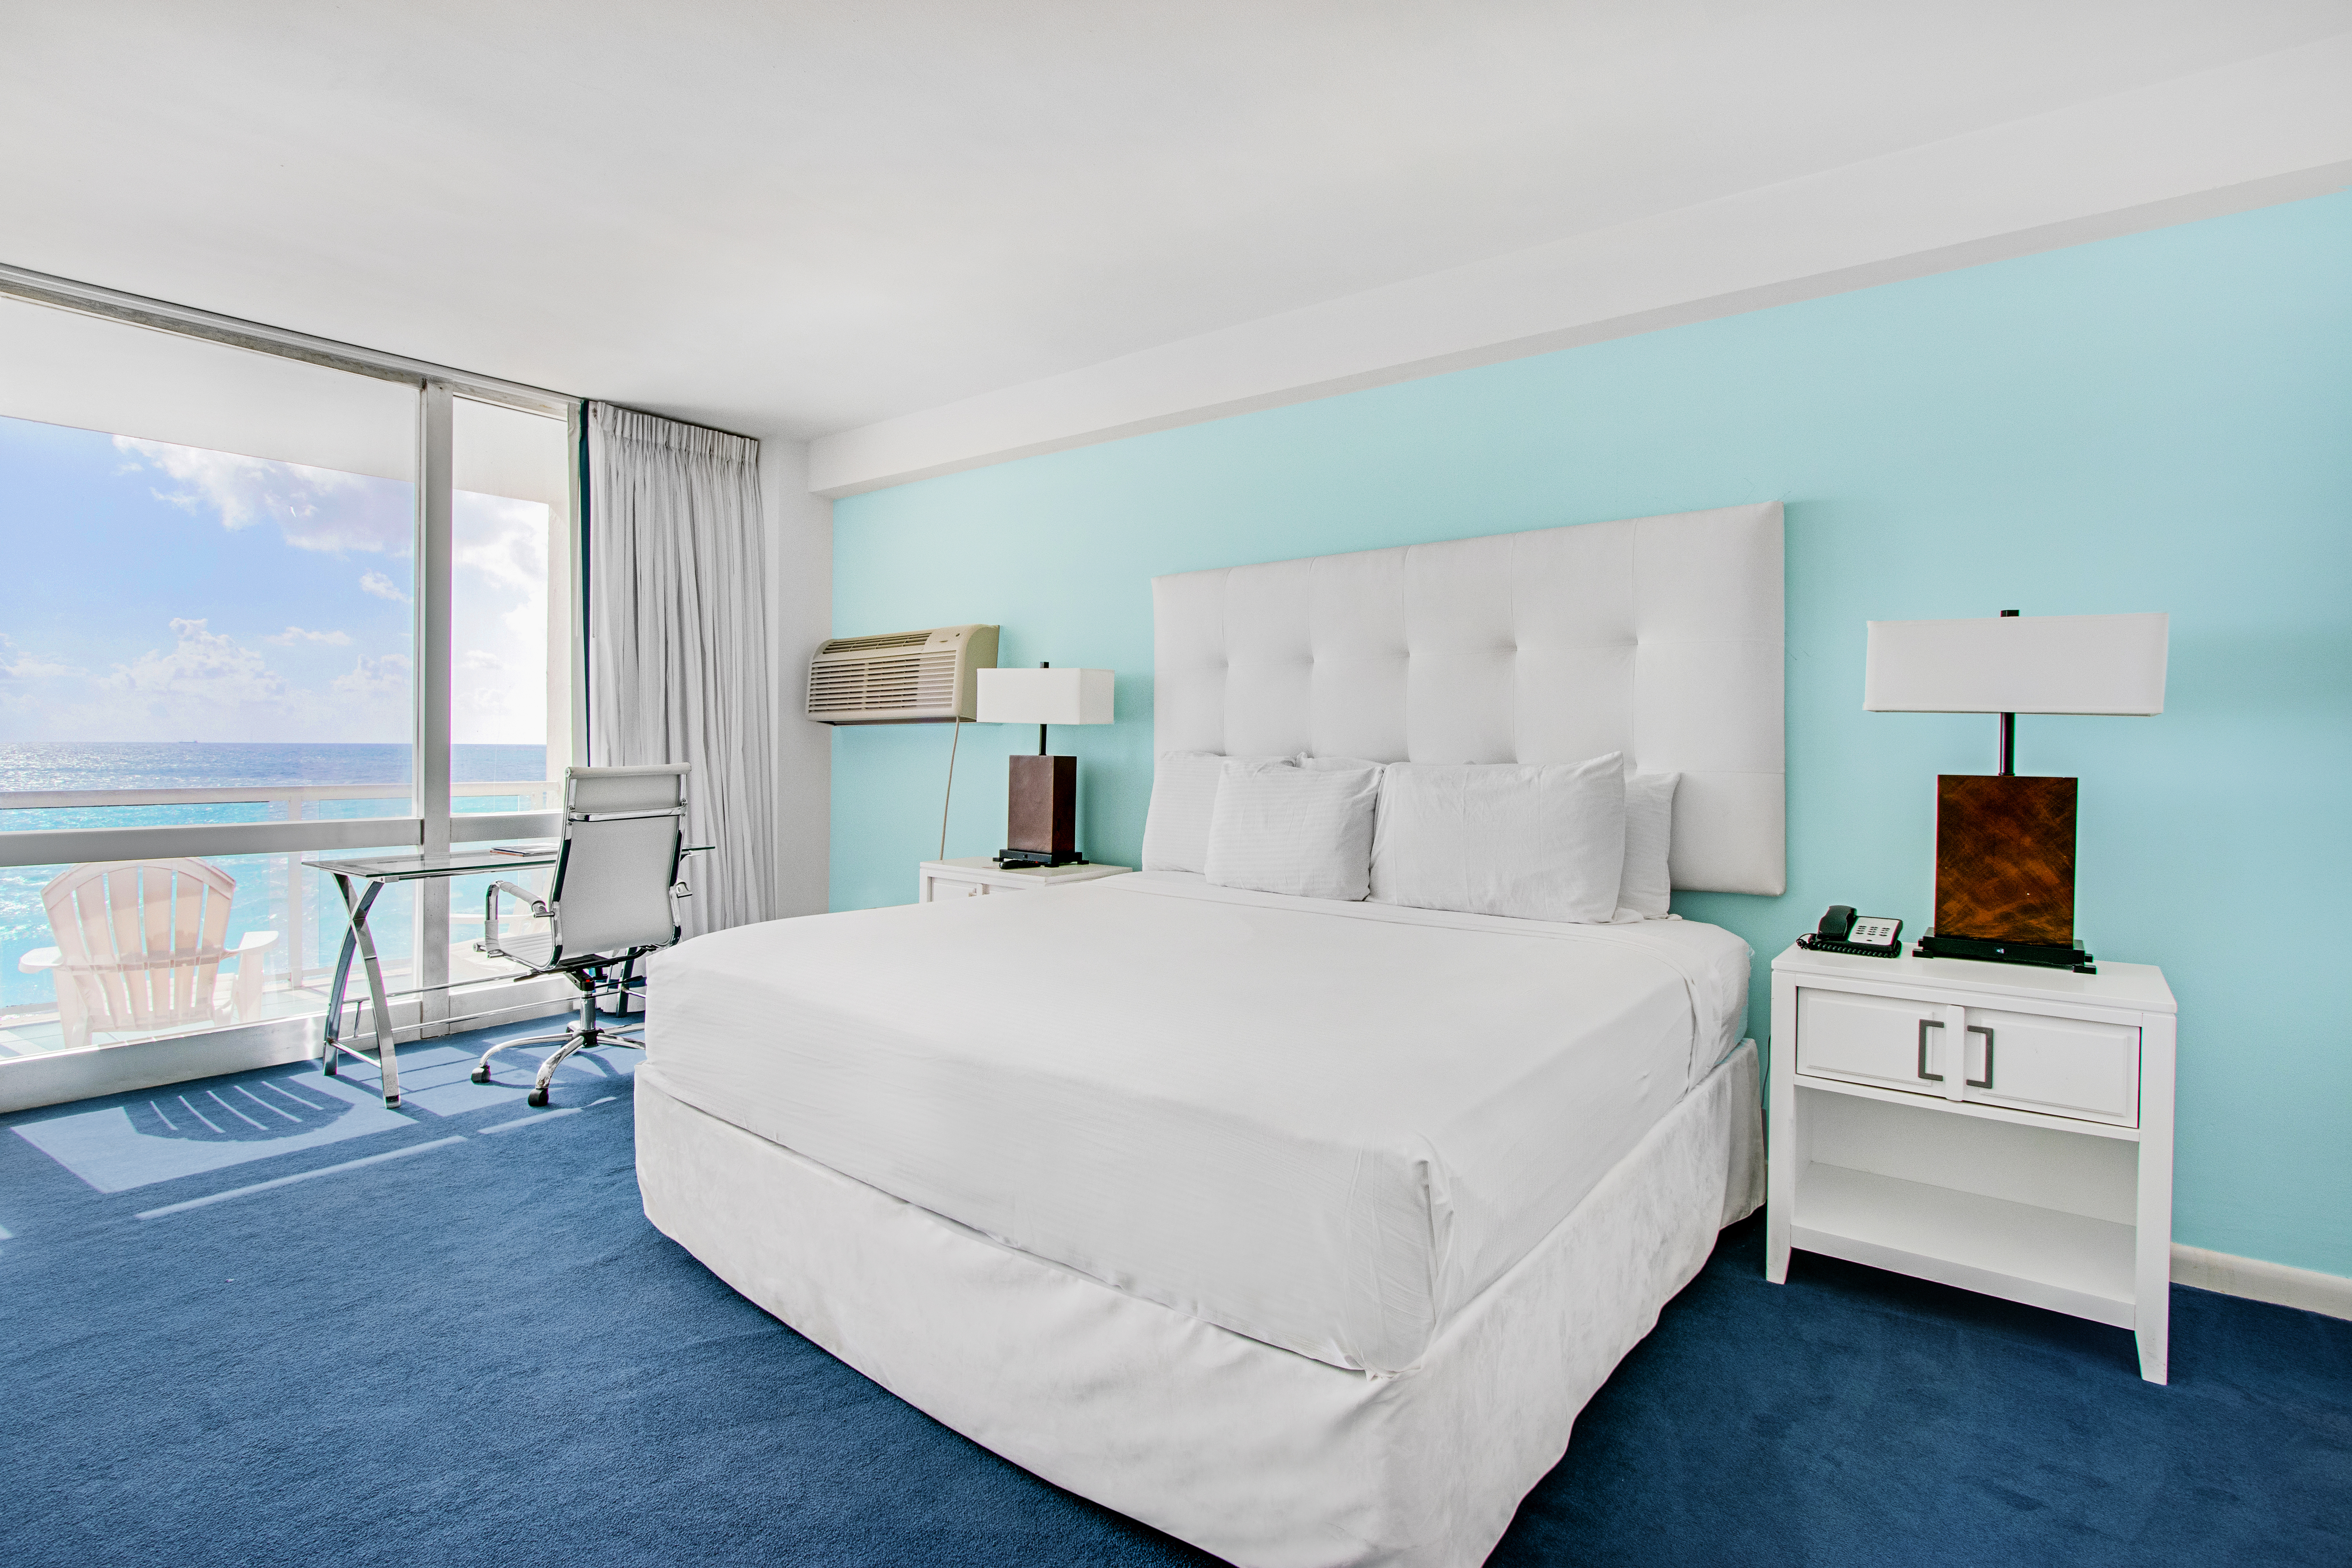 Standard Oceanfront 1 King Bed room type at the Deauville Beach Resort